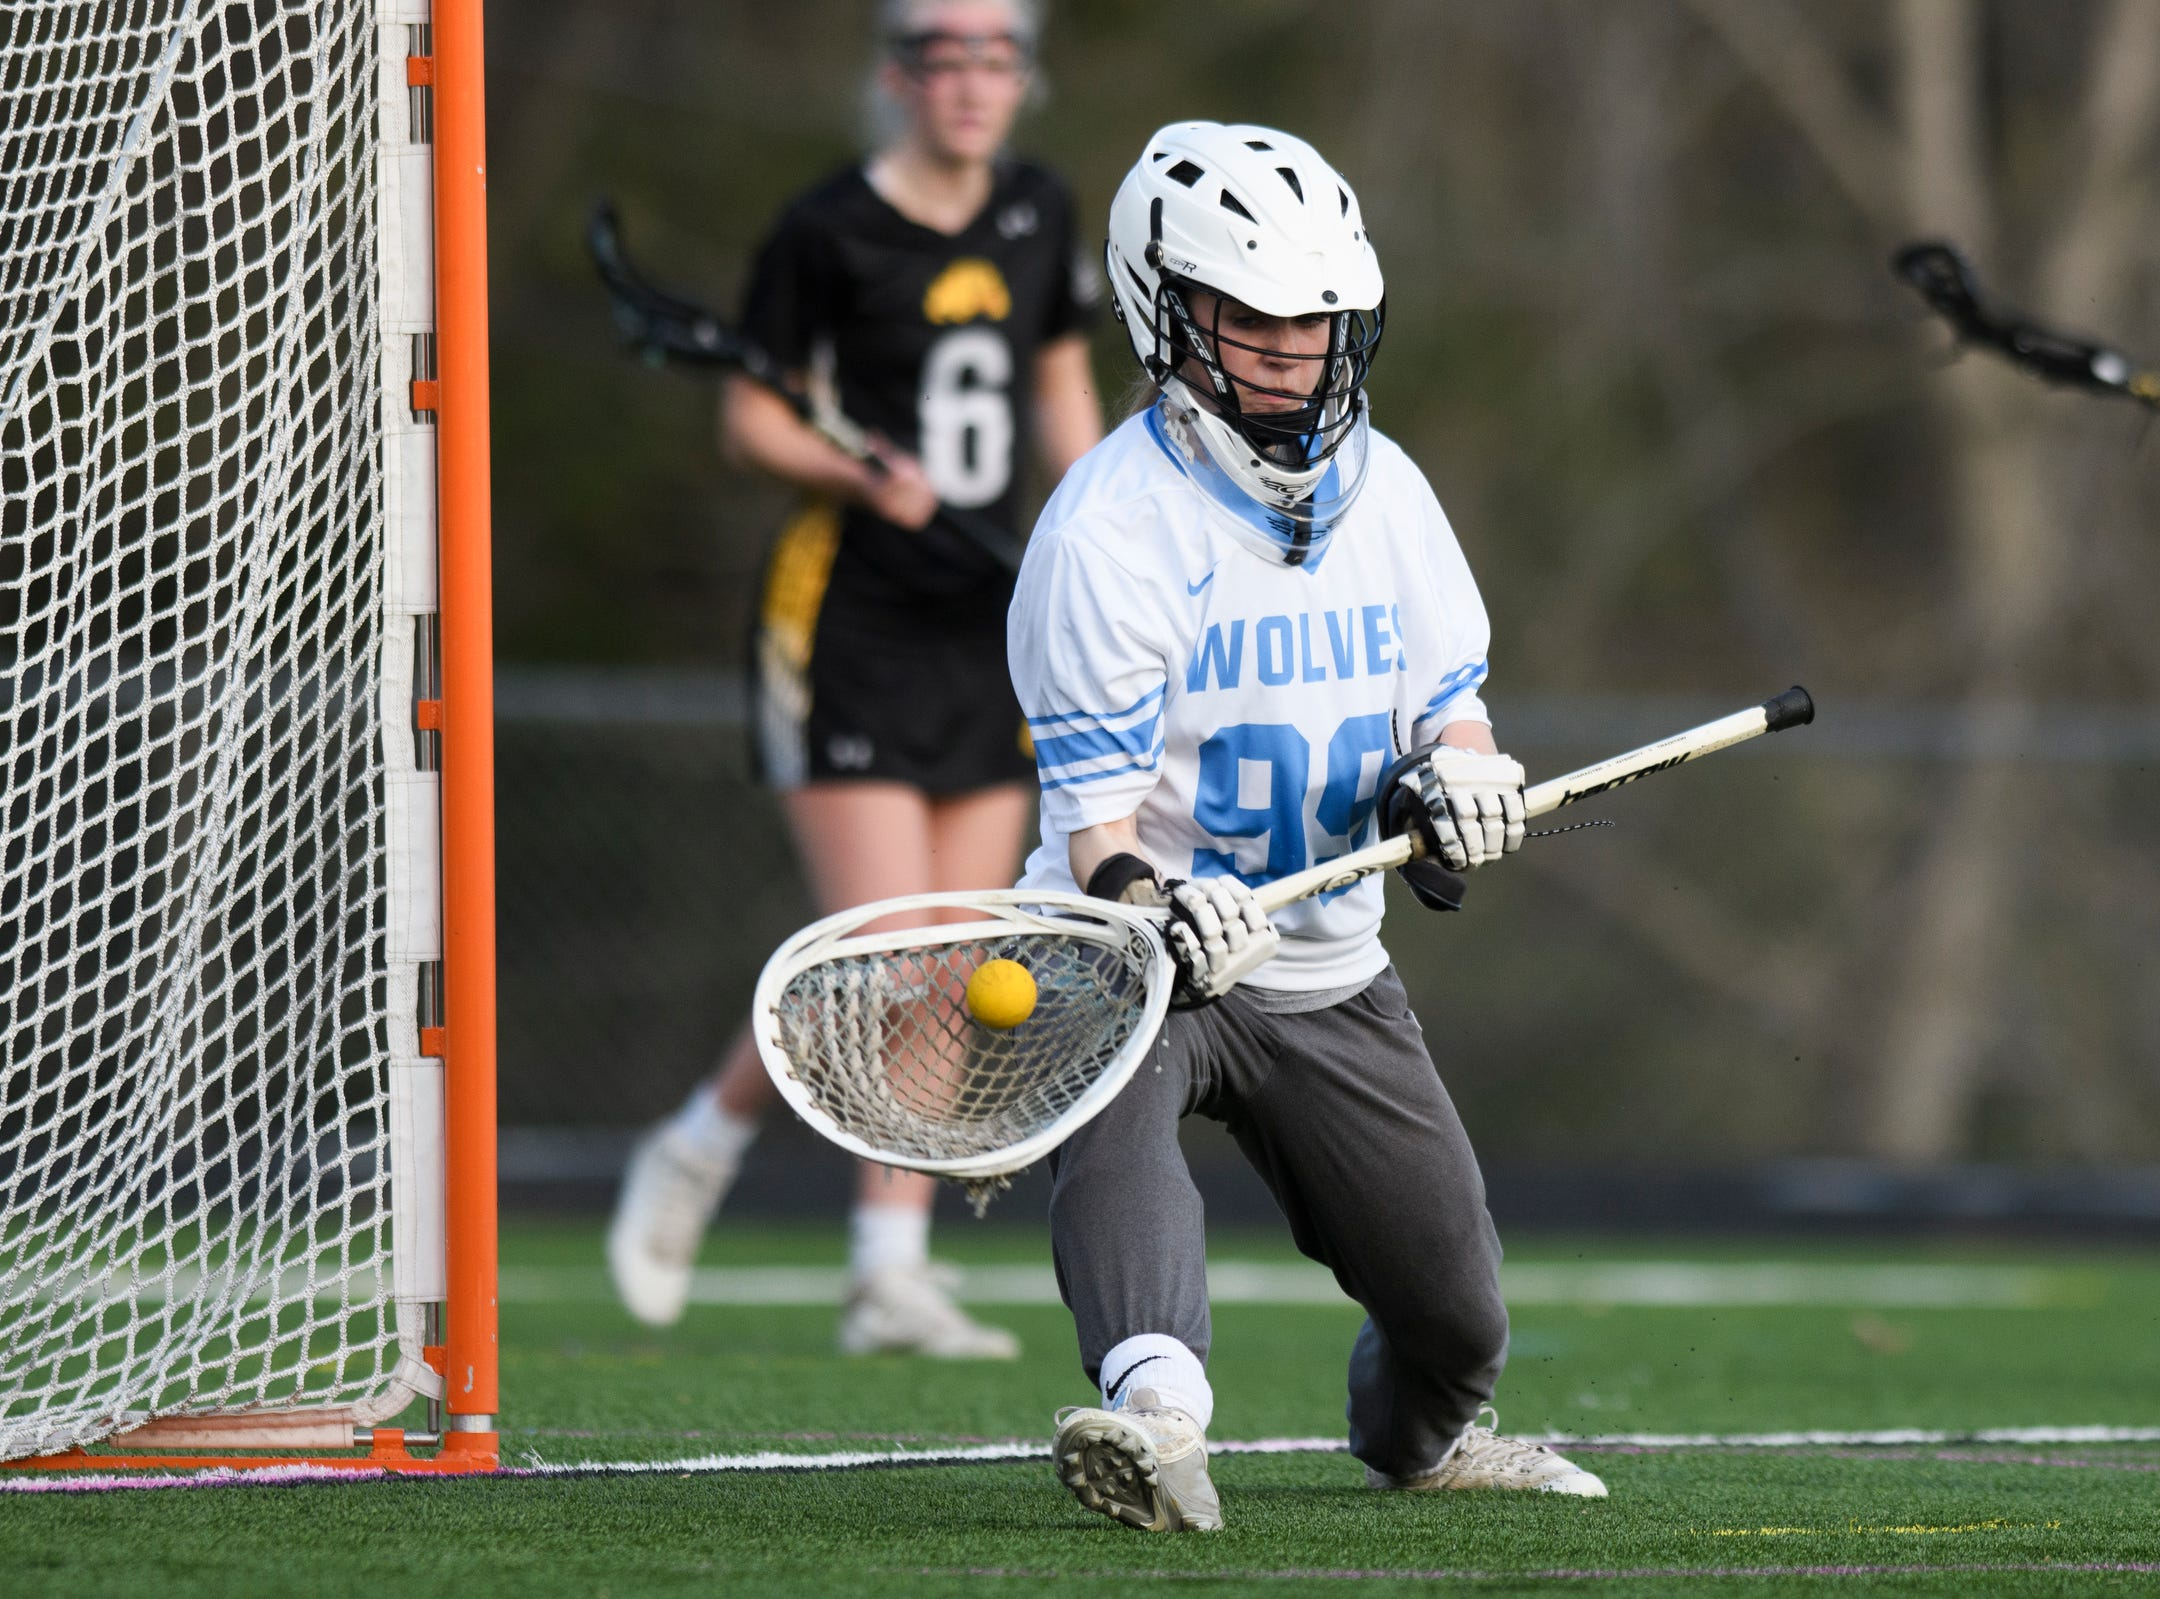 South Burlington goalie Claire Phillips (99) makes a save during the high school girls lacrosse game between Burr and Burton Bulldogs and the South Burlington Wolves at Munson Field on Monday afternoon May 6, 2019 in South Burlington, Vermont.